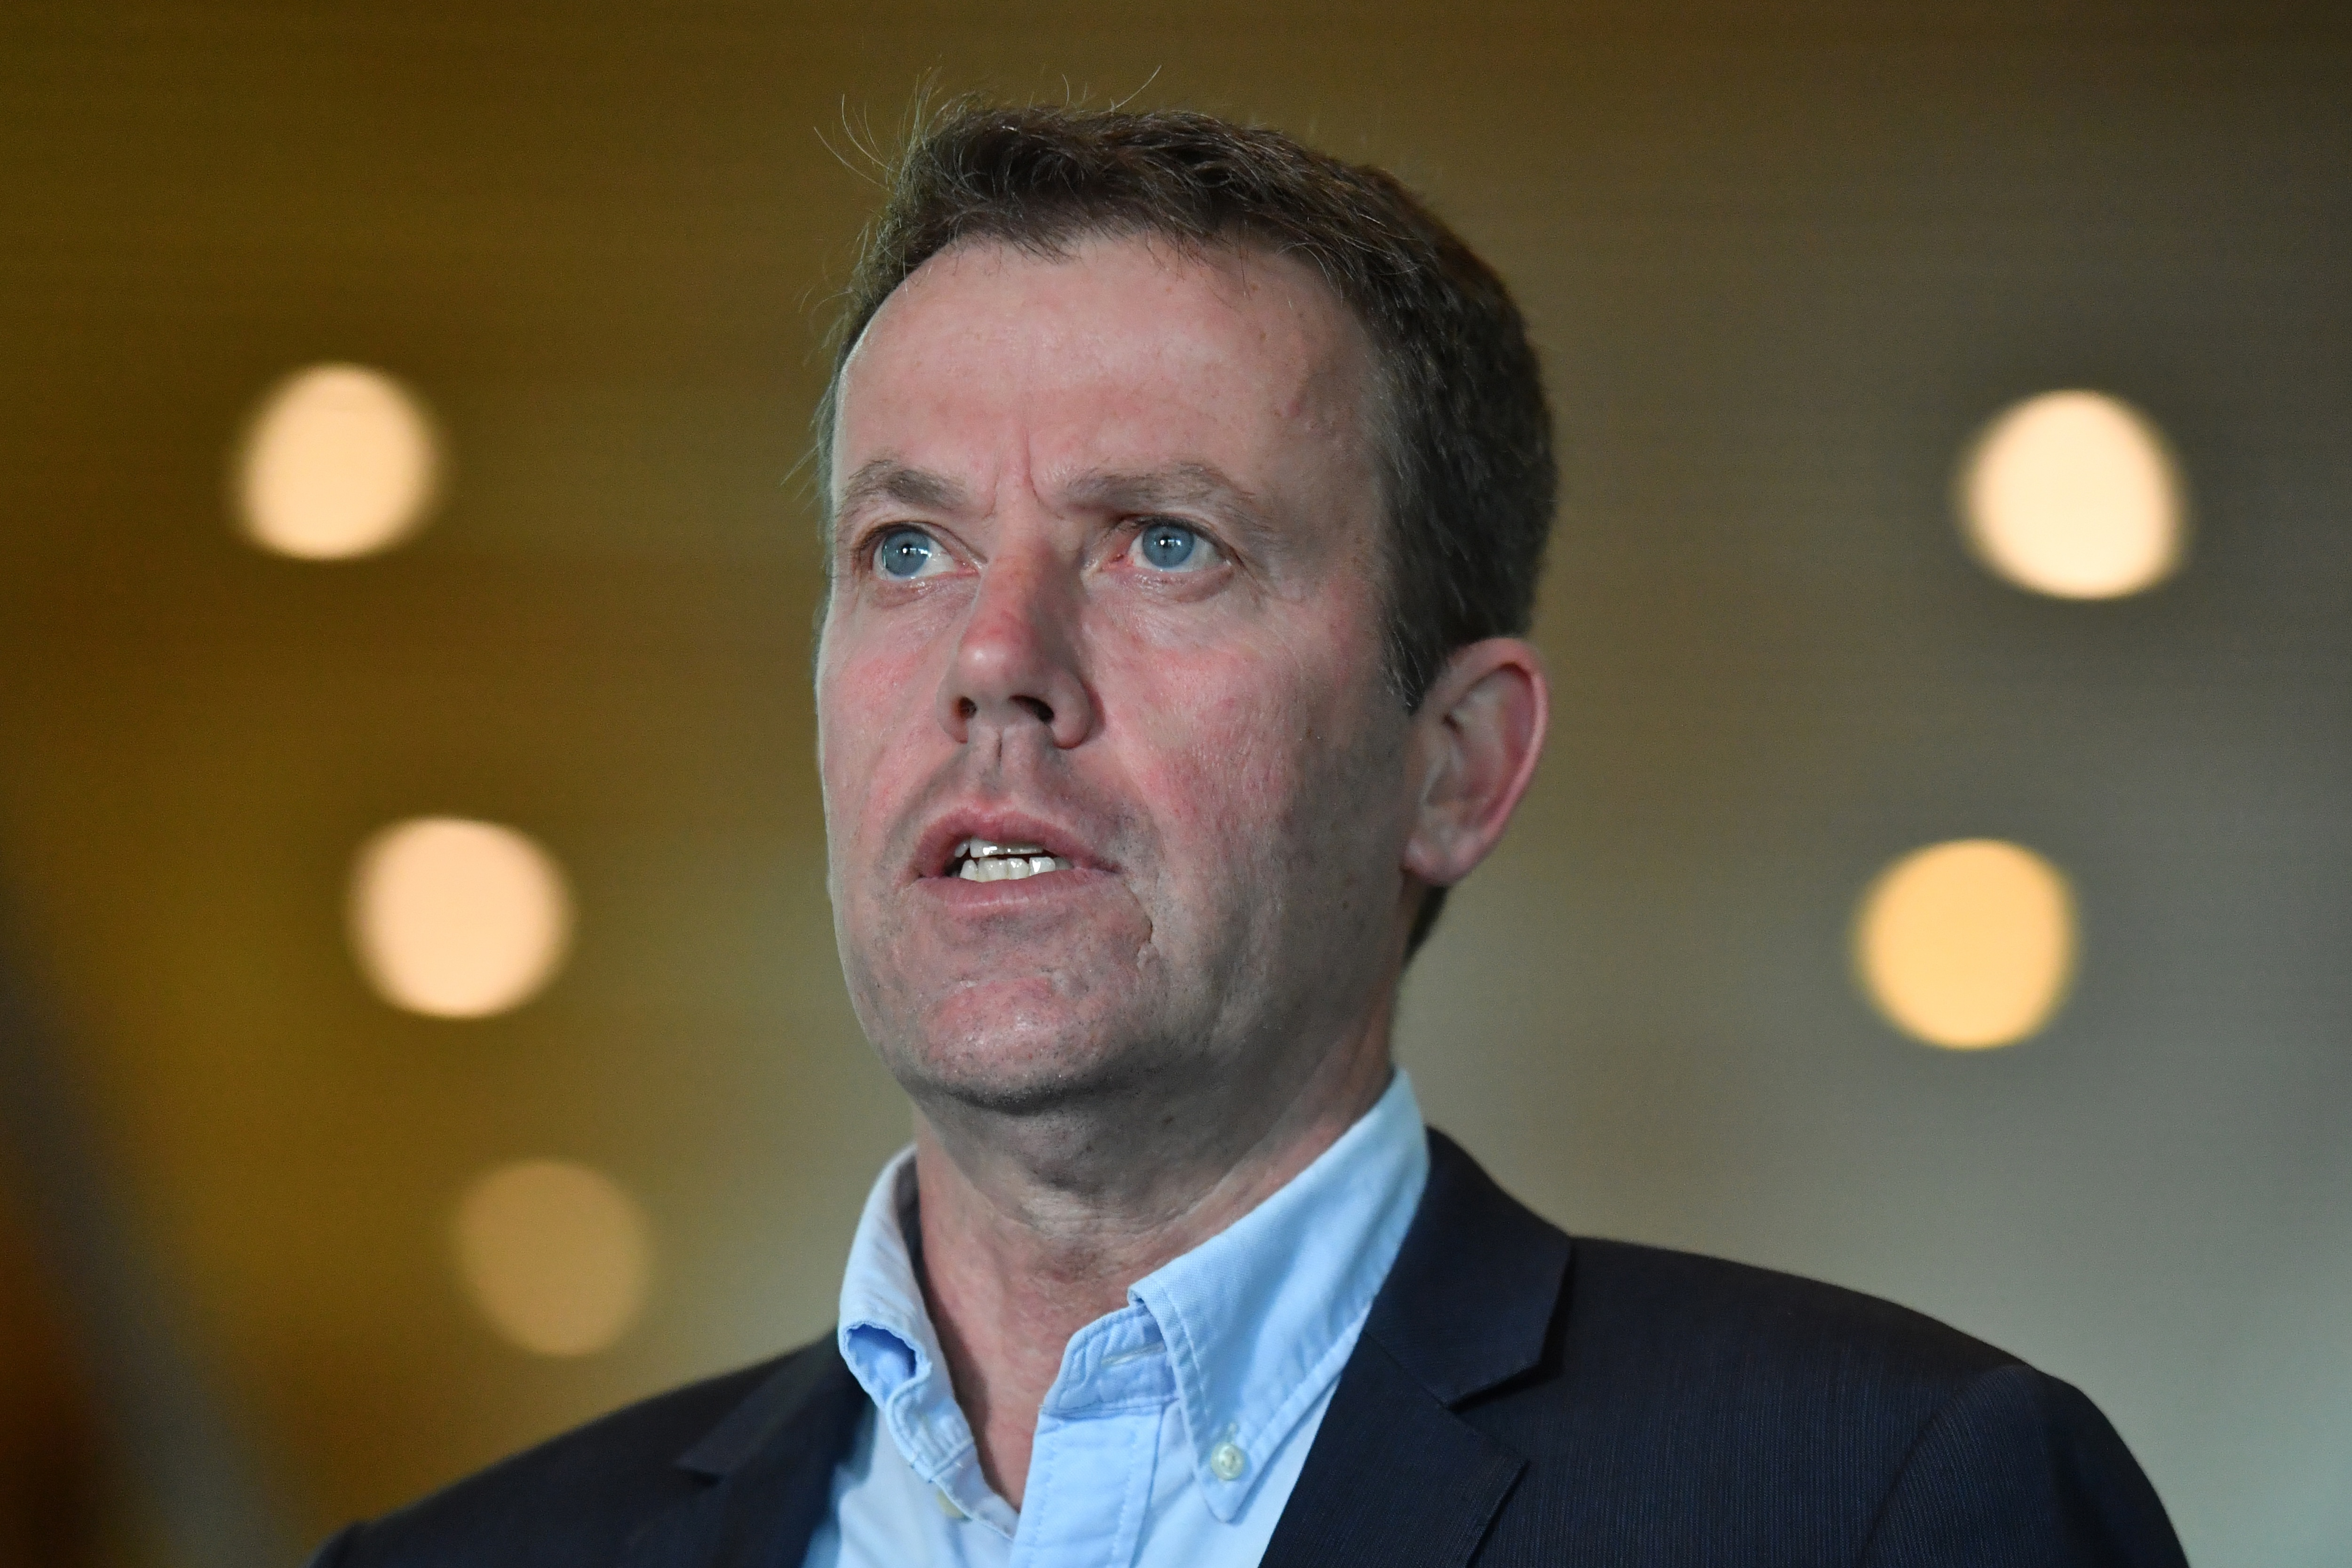 Minister for Education Dan Tehan says Australia has supported its international students.